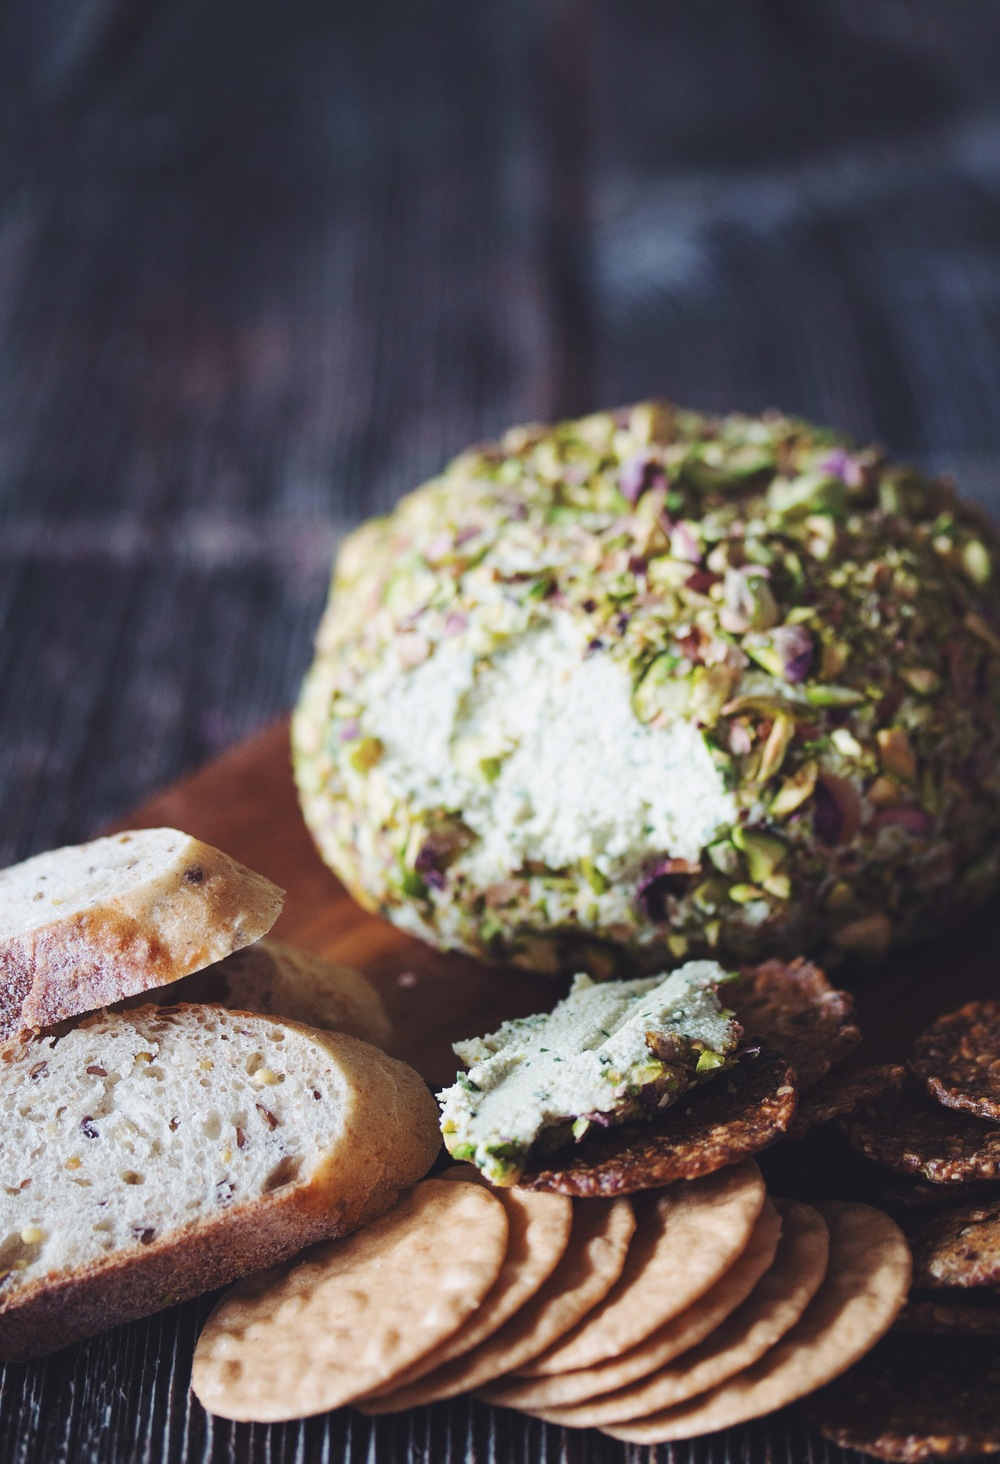 vegan pistachio crusted cashew cheeseball by hot for food